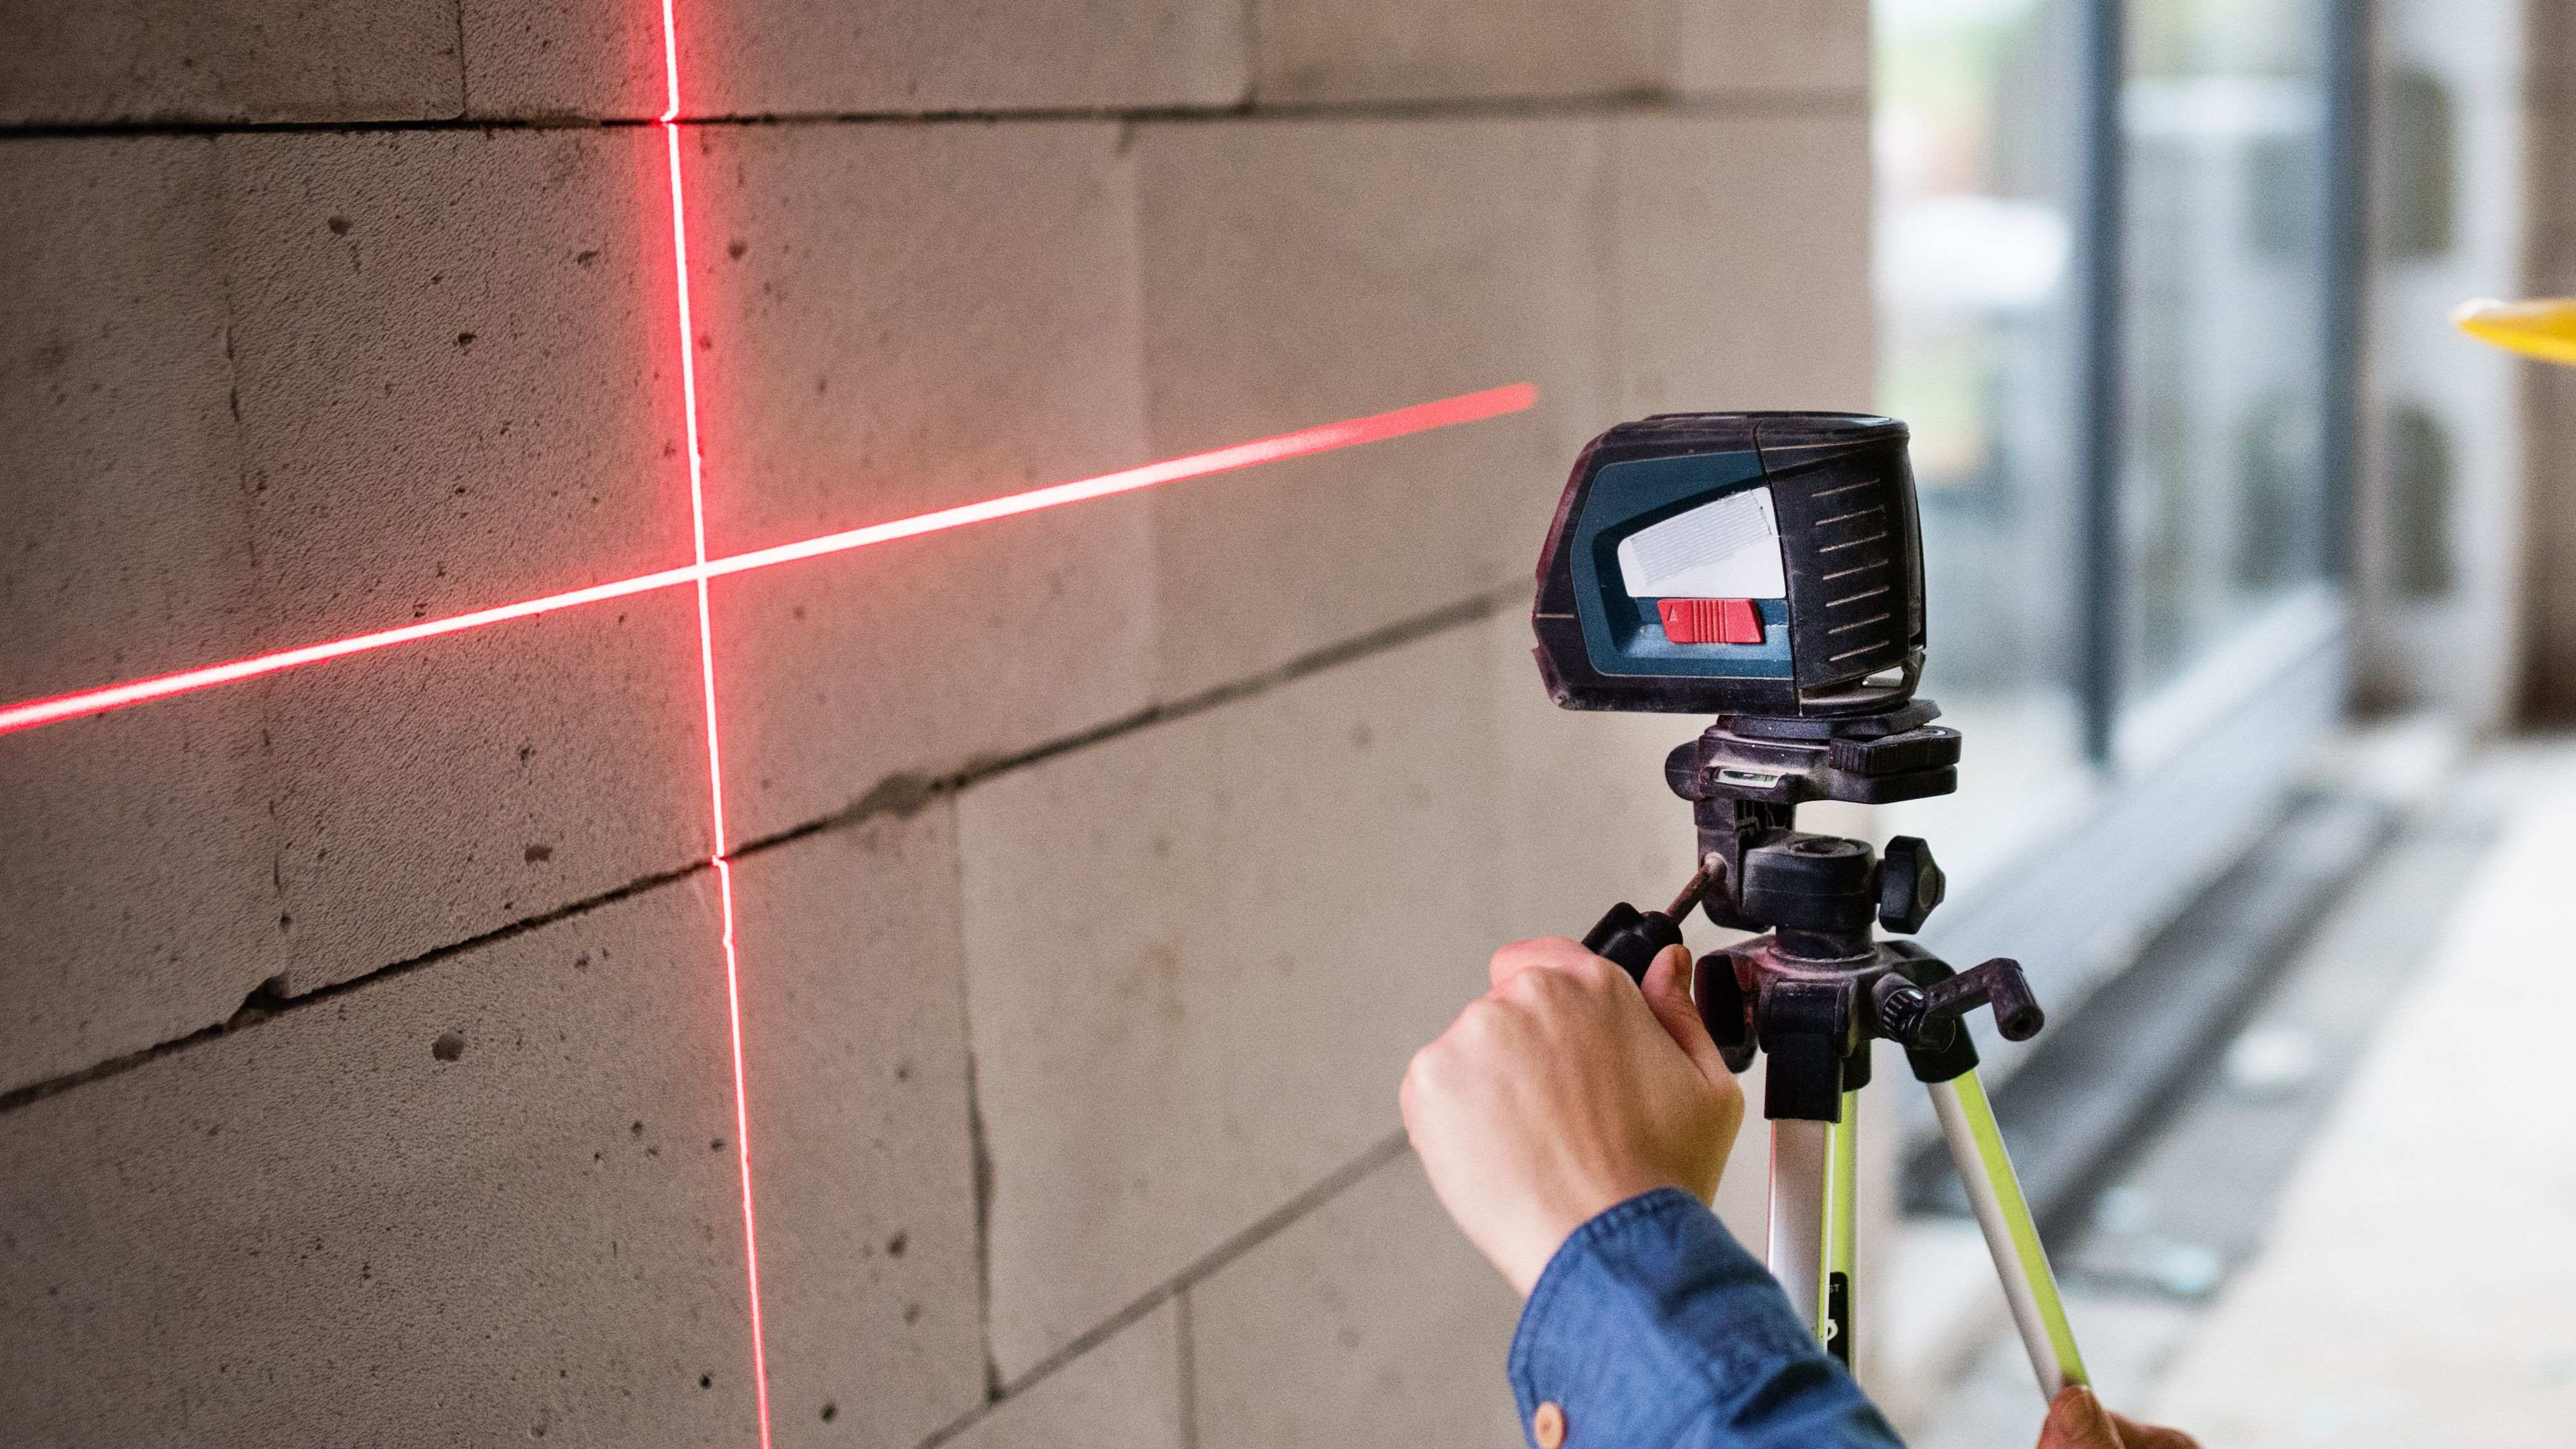 Laser level buying guide